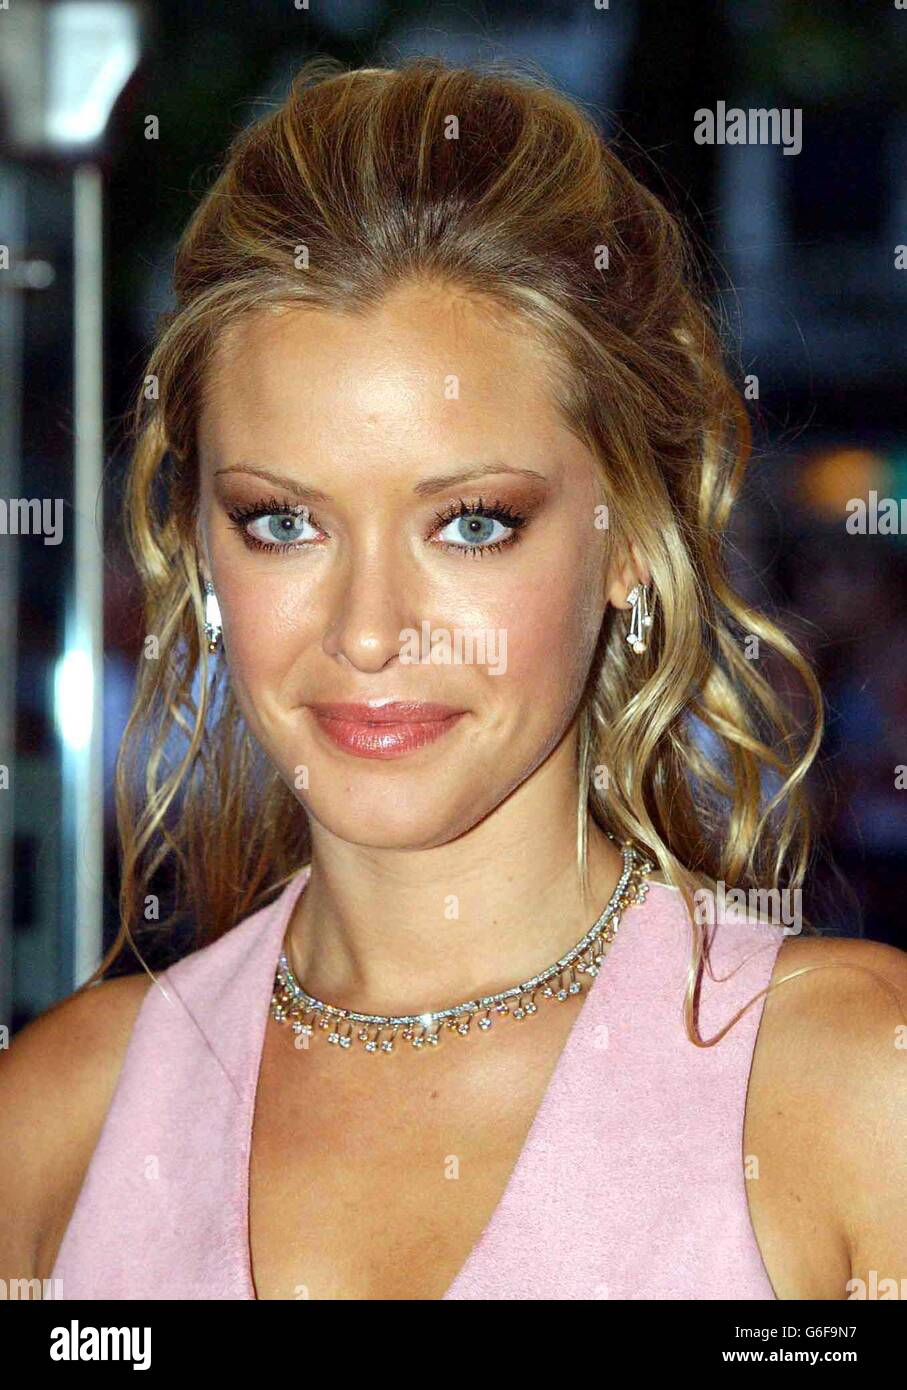 actress kristanna loken arriving at the odeon leicester square stock